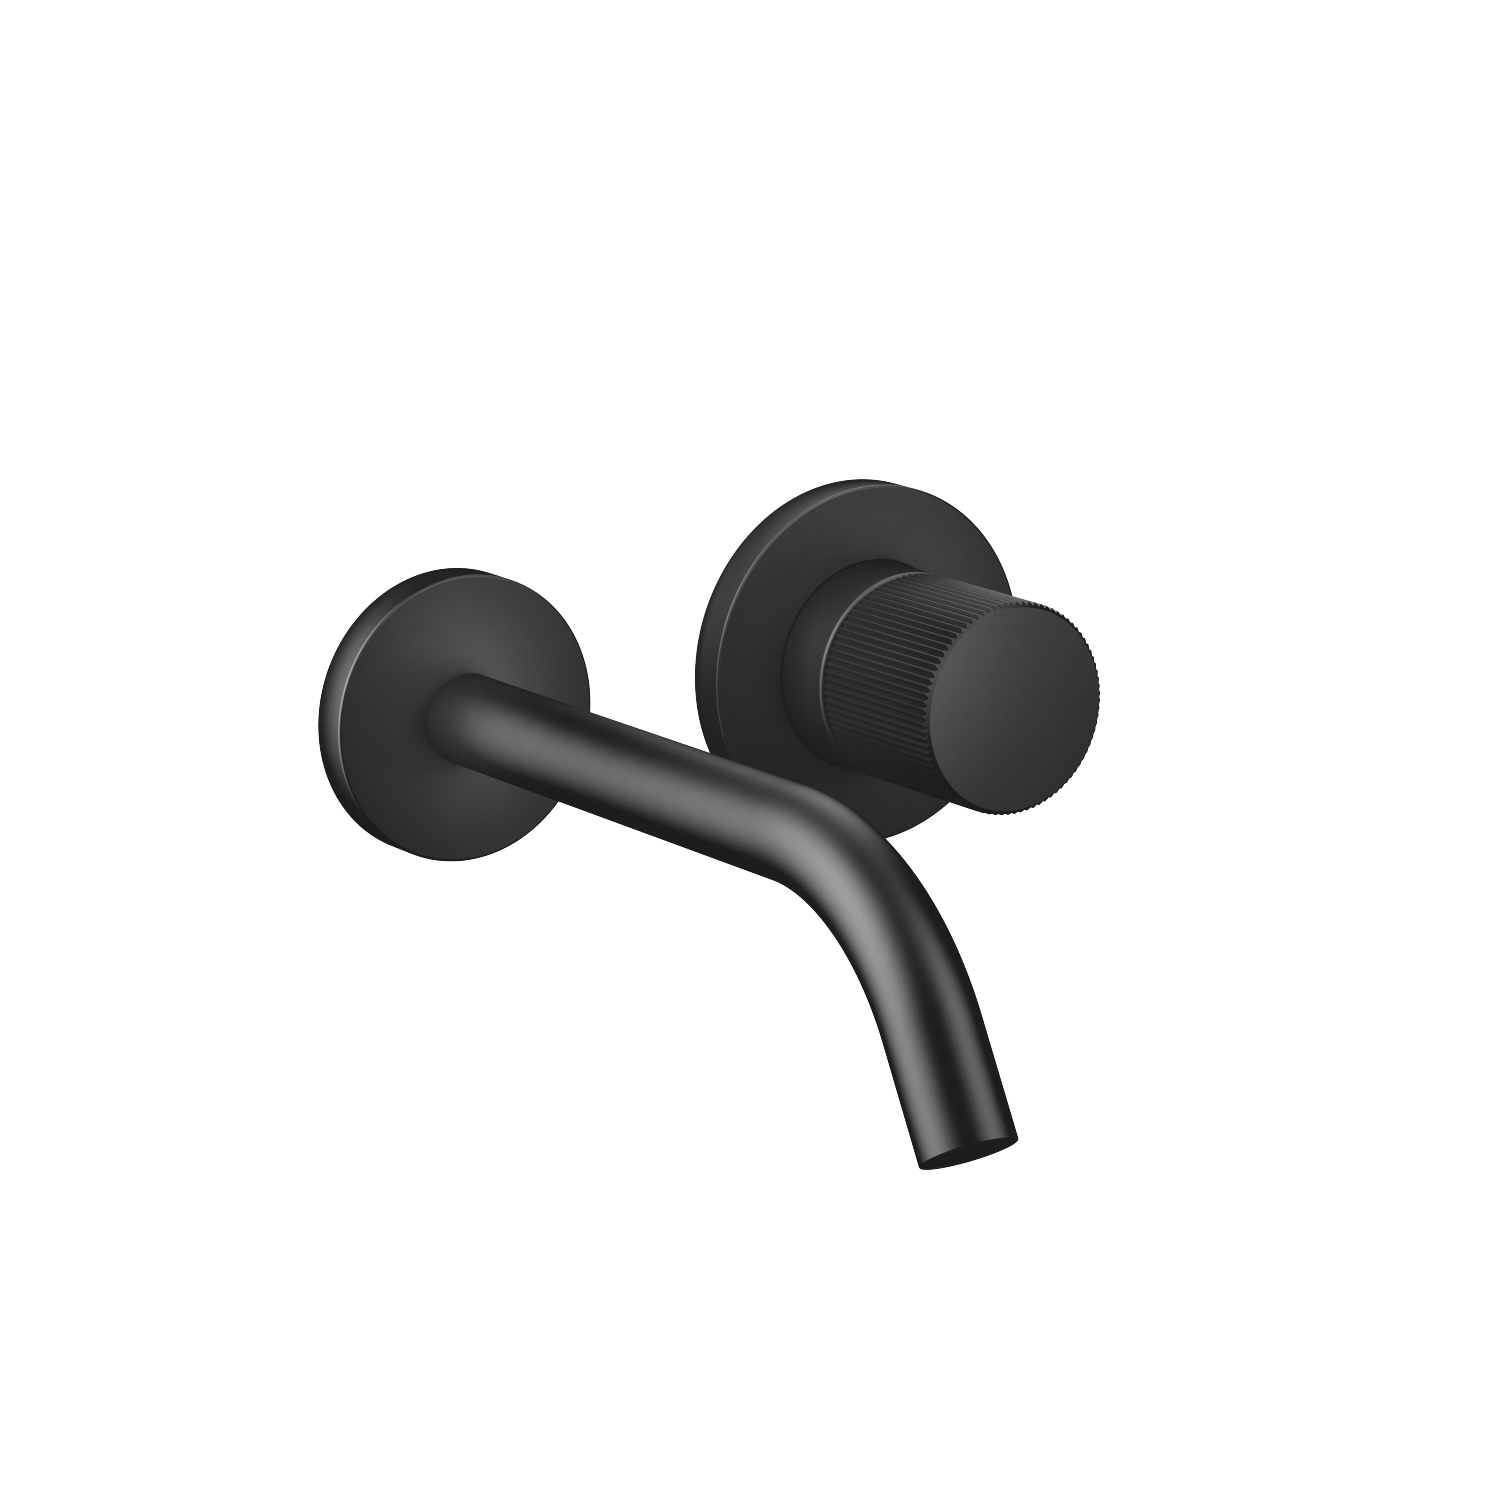 META PURE Wall-mounted single-lever mixer without drain - black matte